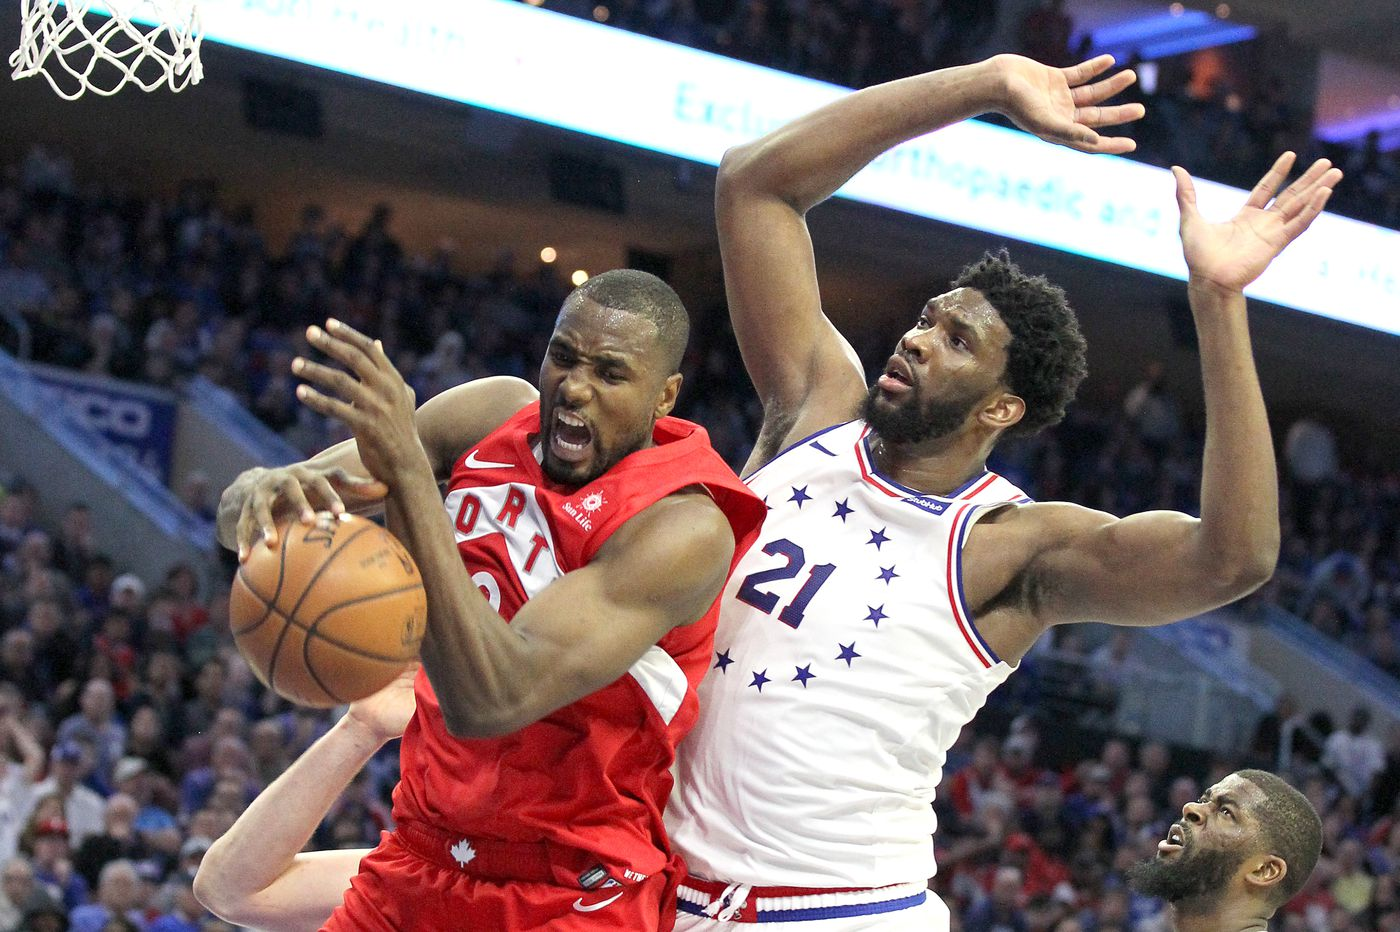 Raptors destroy Sixers with total team effort, take 3-2 series lead